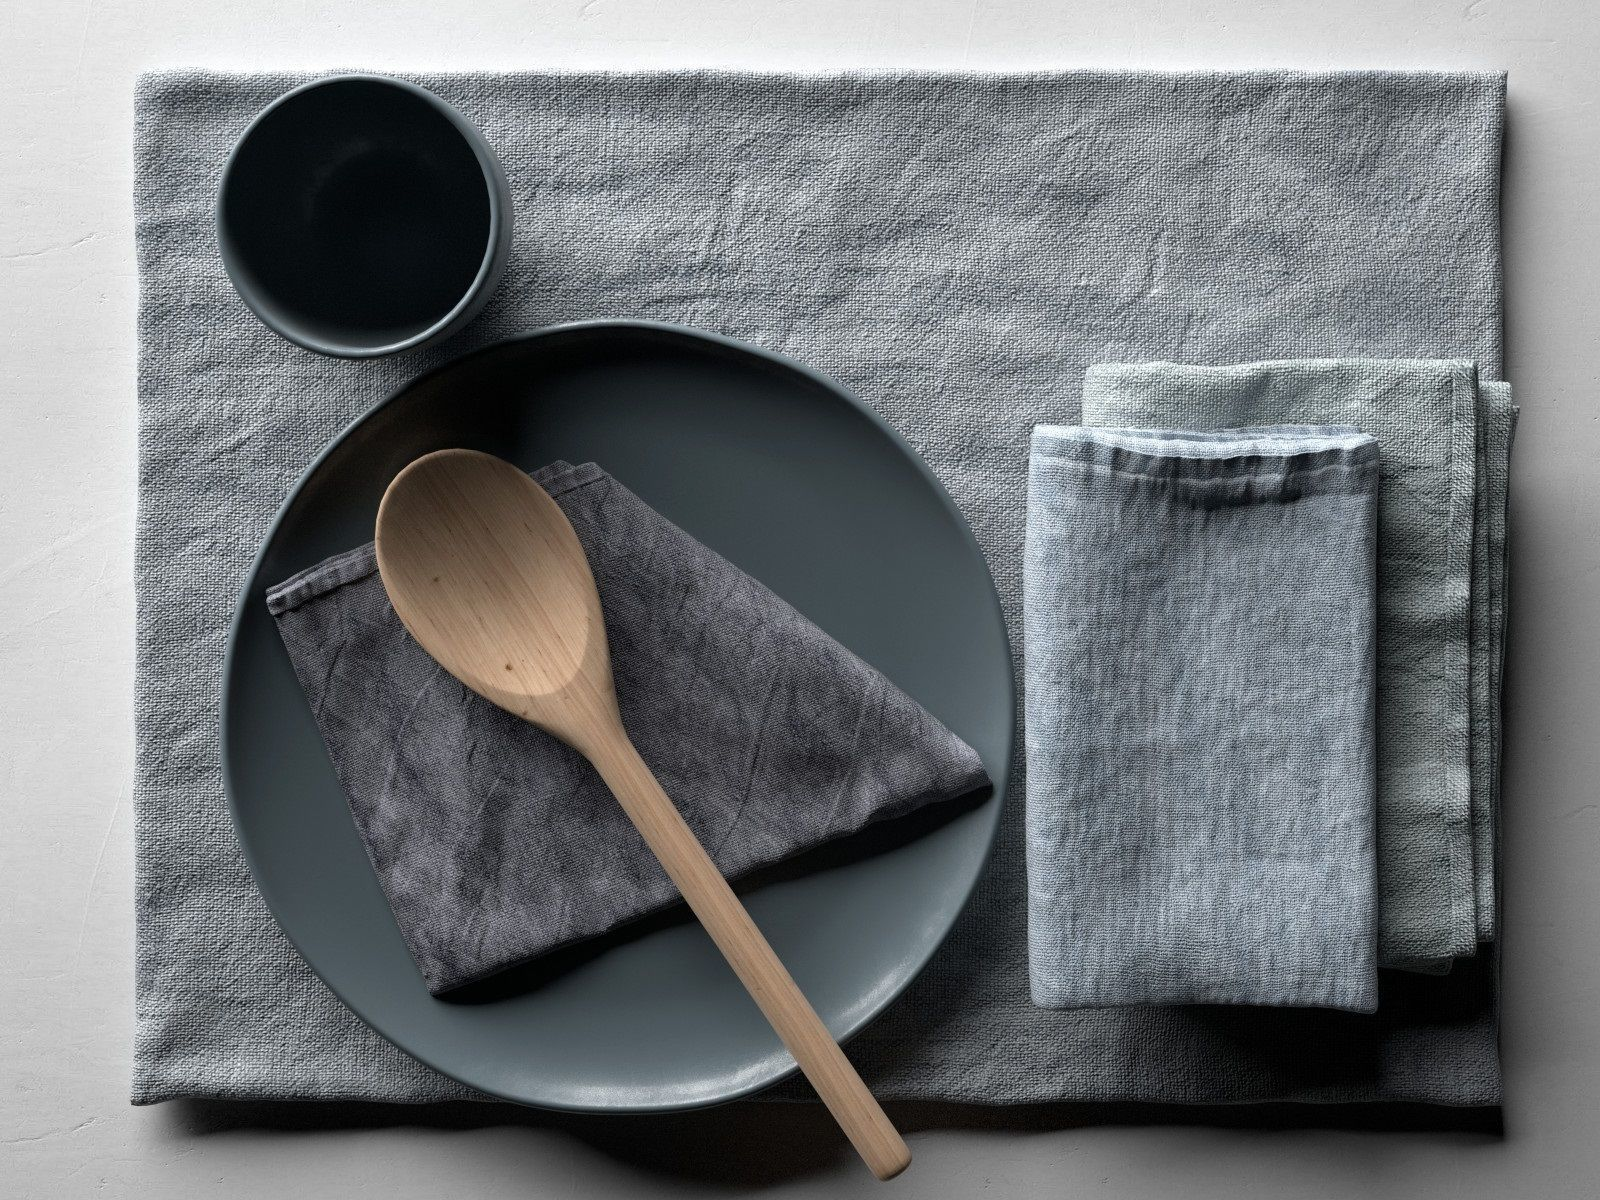 Napkins with Tableware